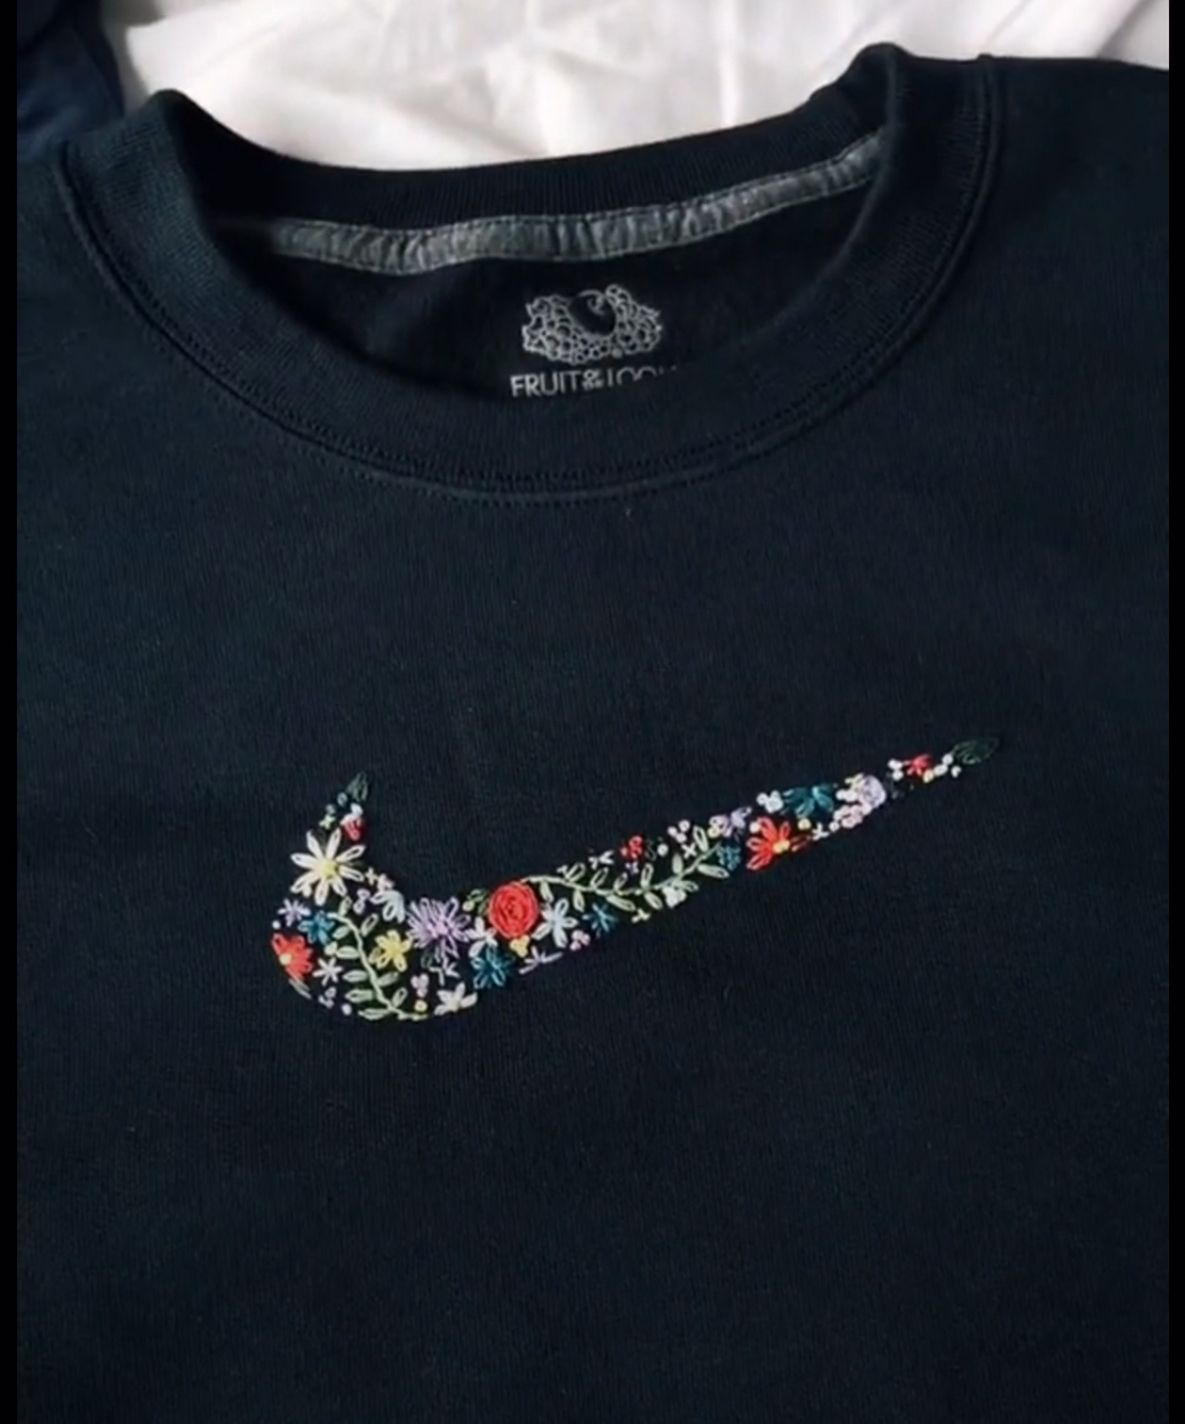 Nike Embroidered Logo In 2020 Clothes Embroidery Diy Embroidery On Clothes Diy Embroidery Shirt